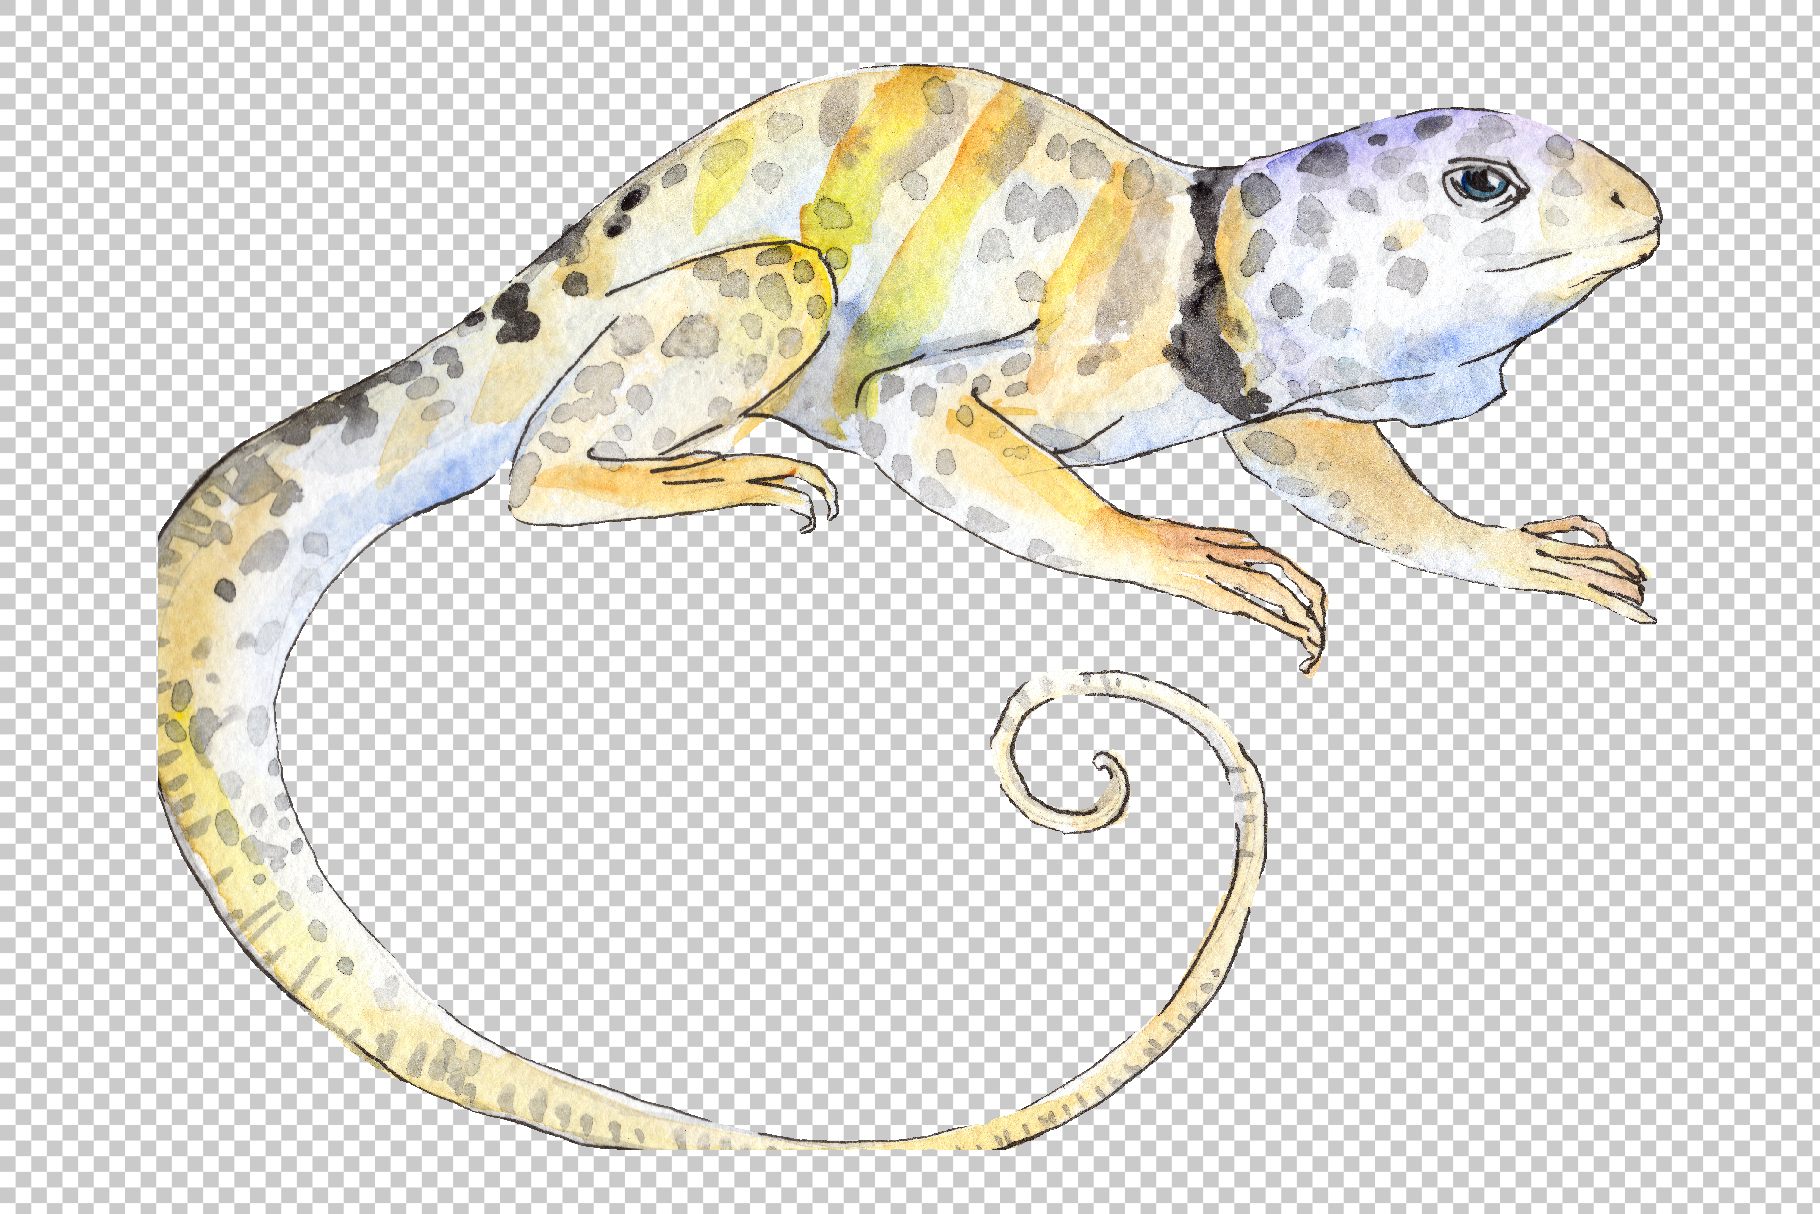 Iguana-1 Watercolor png example image 2